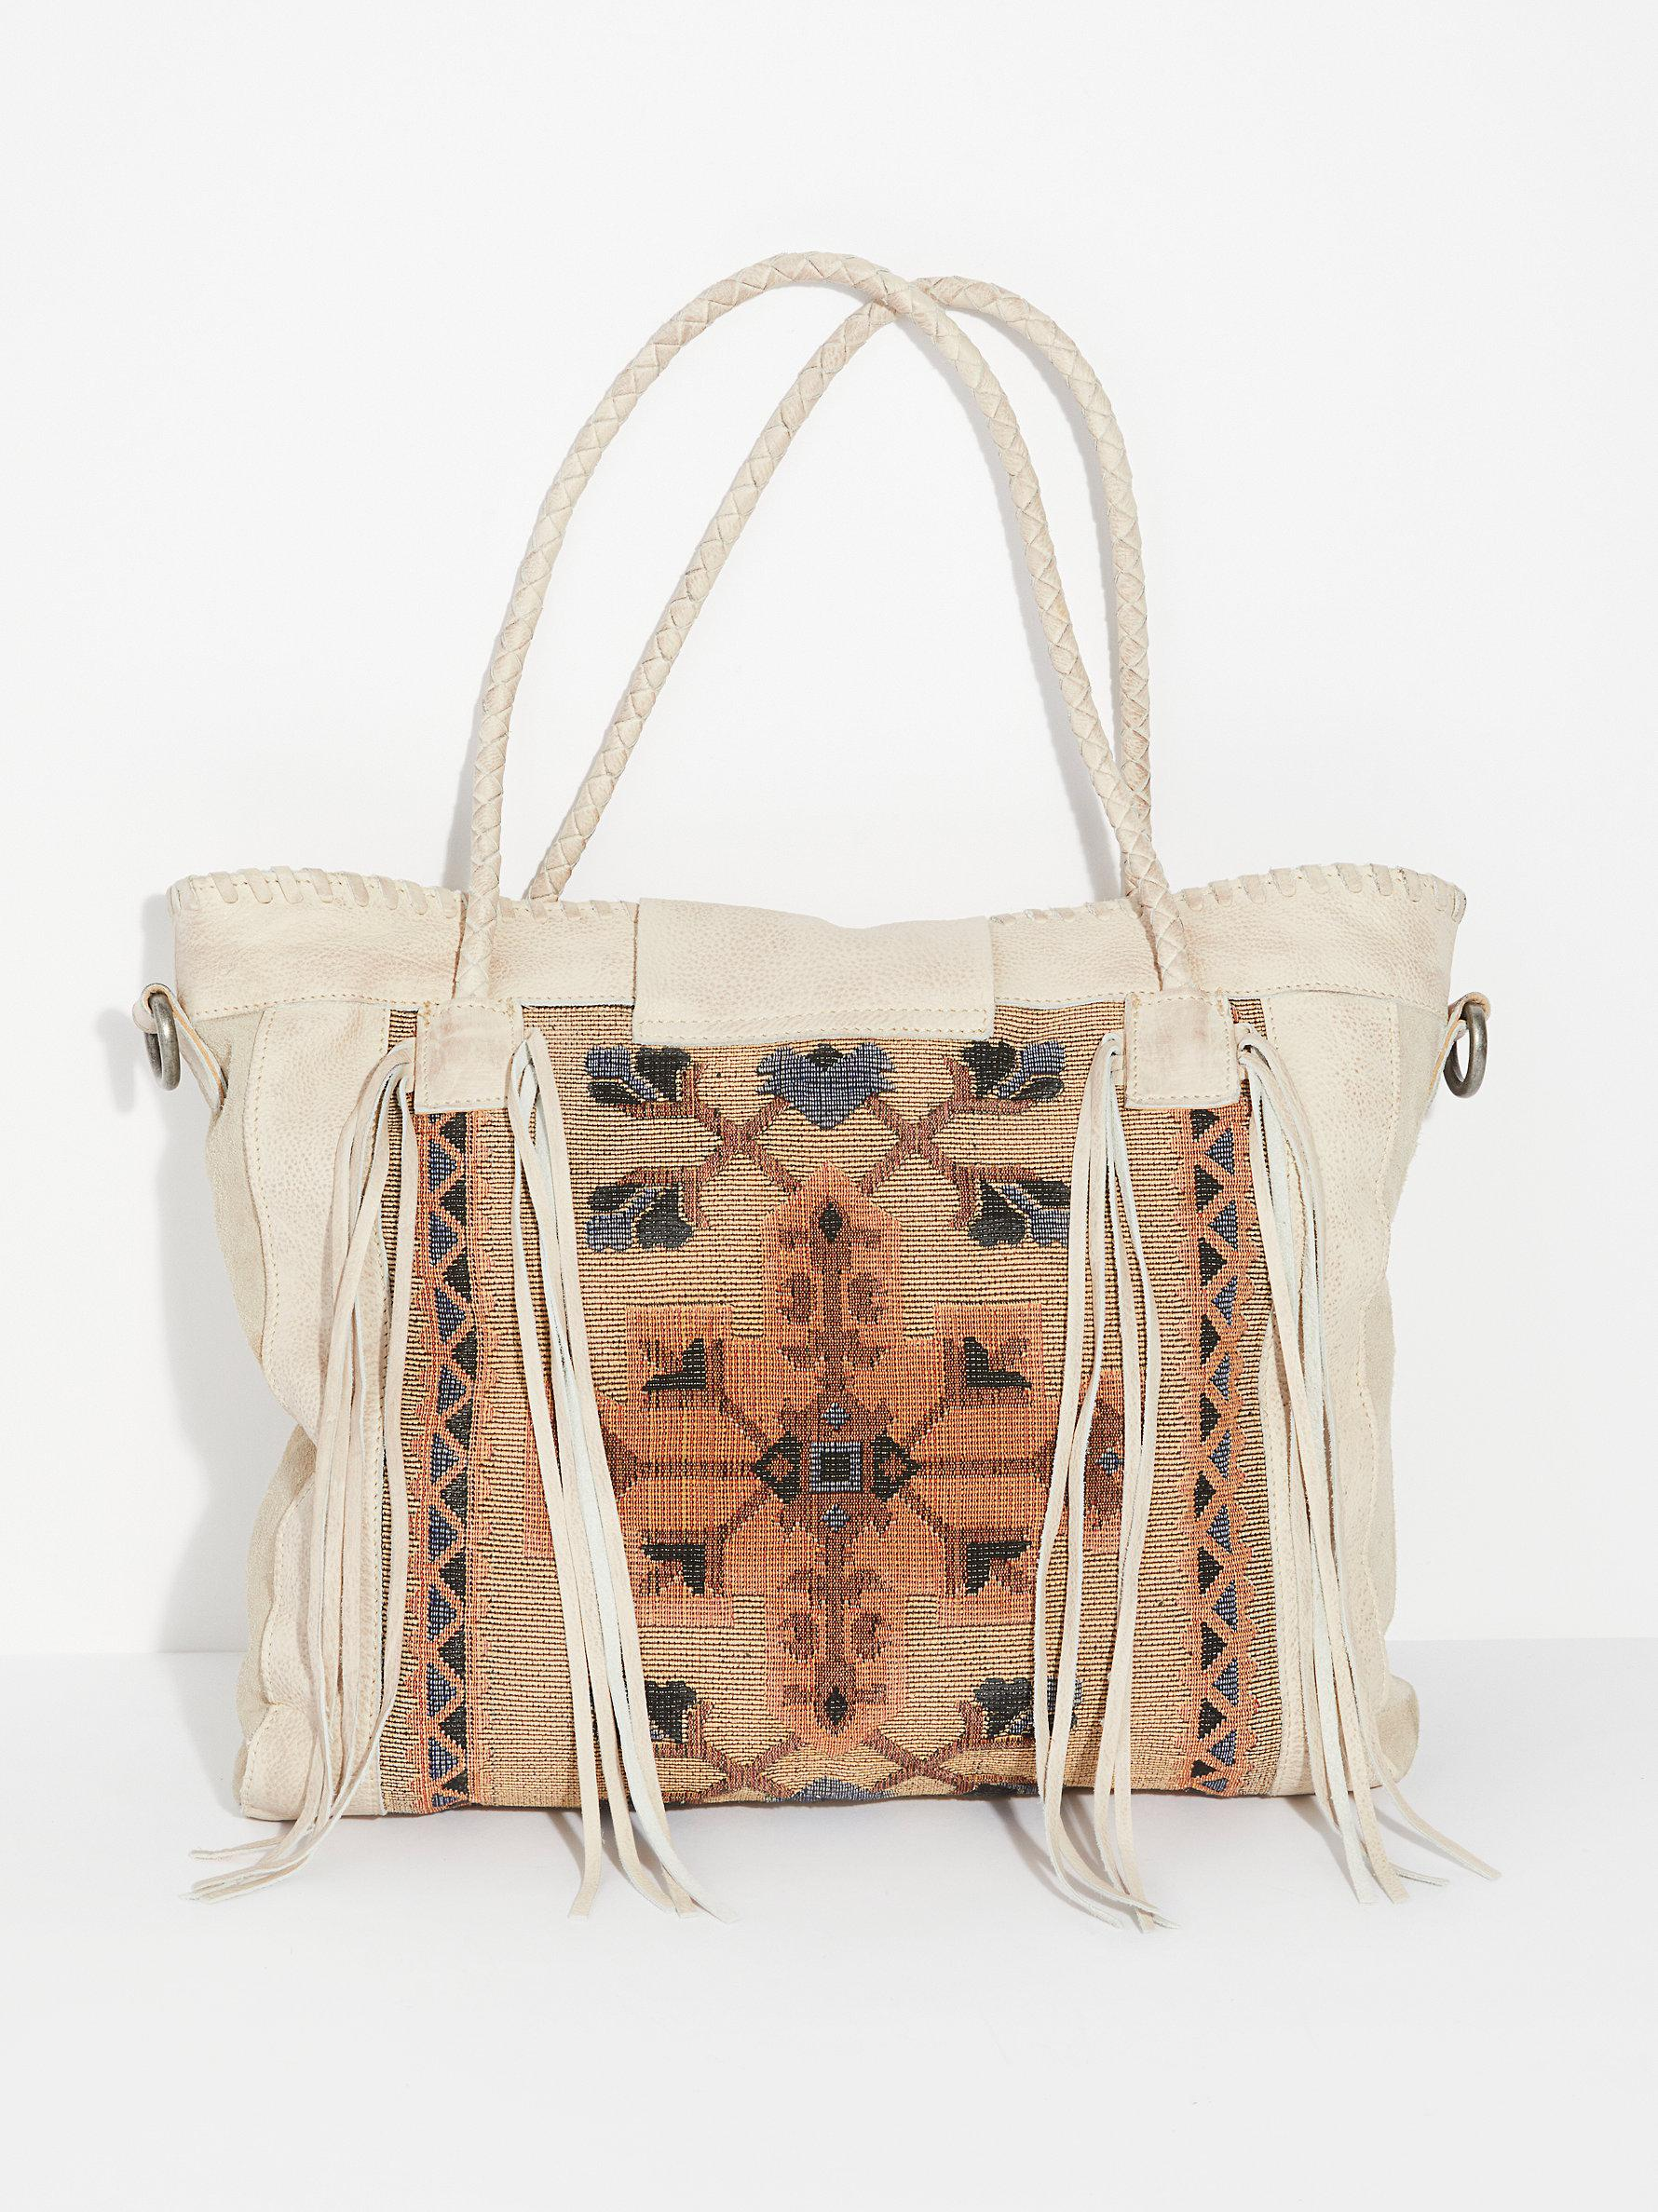 Free People Leather Canyonland Tote in Ivory (White)